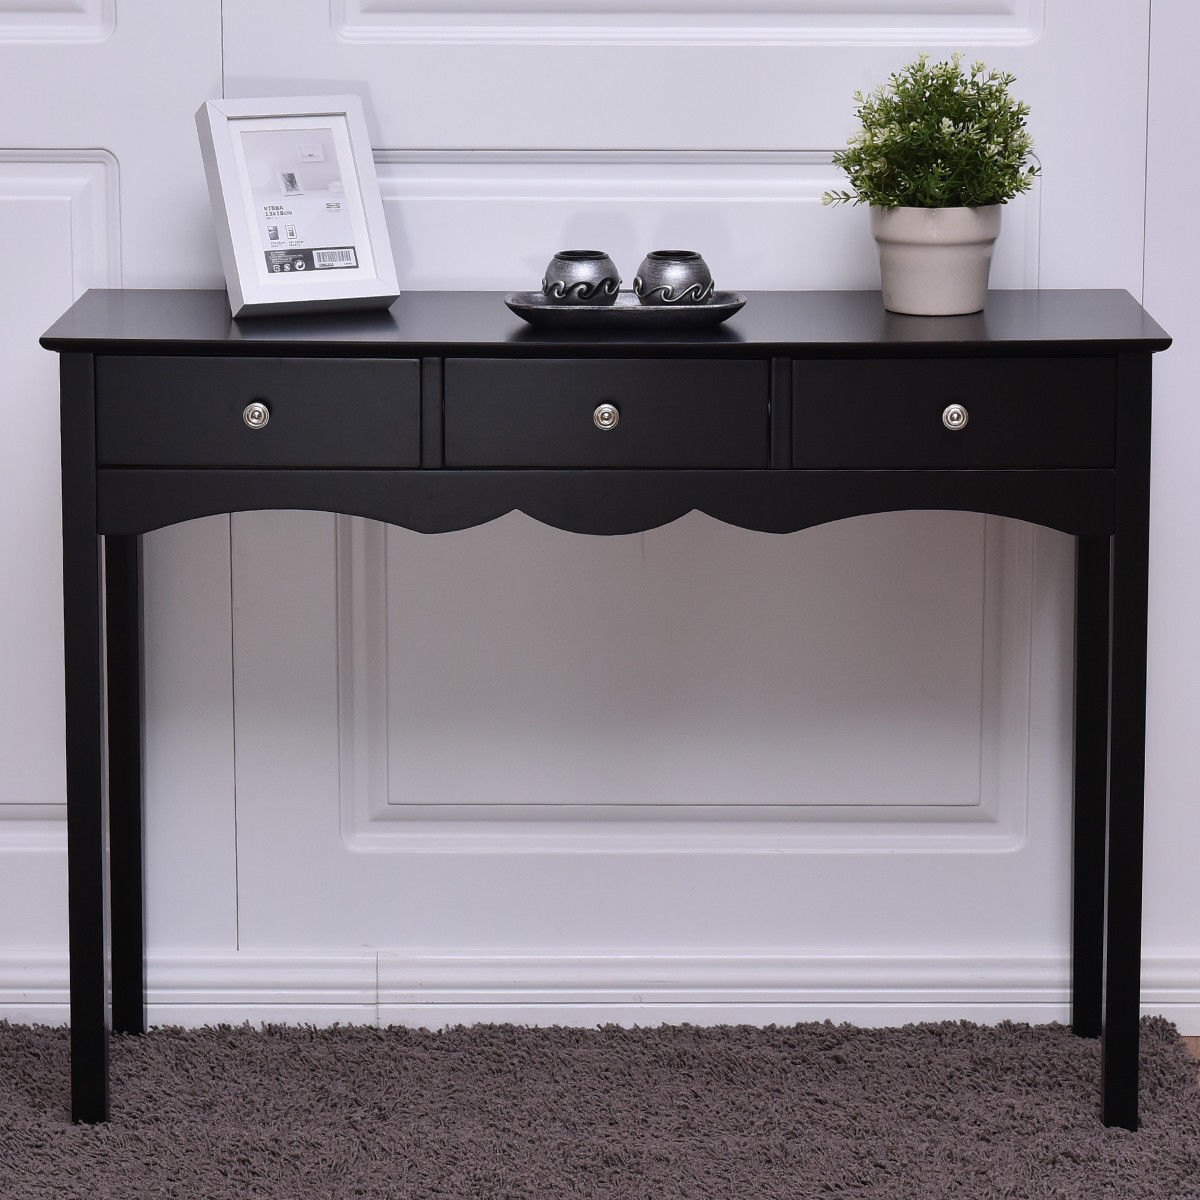 way console table hall side desk accent entryway drawers black patio furniture cushions gold and mirror pier outdoor wicker tro lamps with umbrella hole diy bar room decor ideas